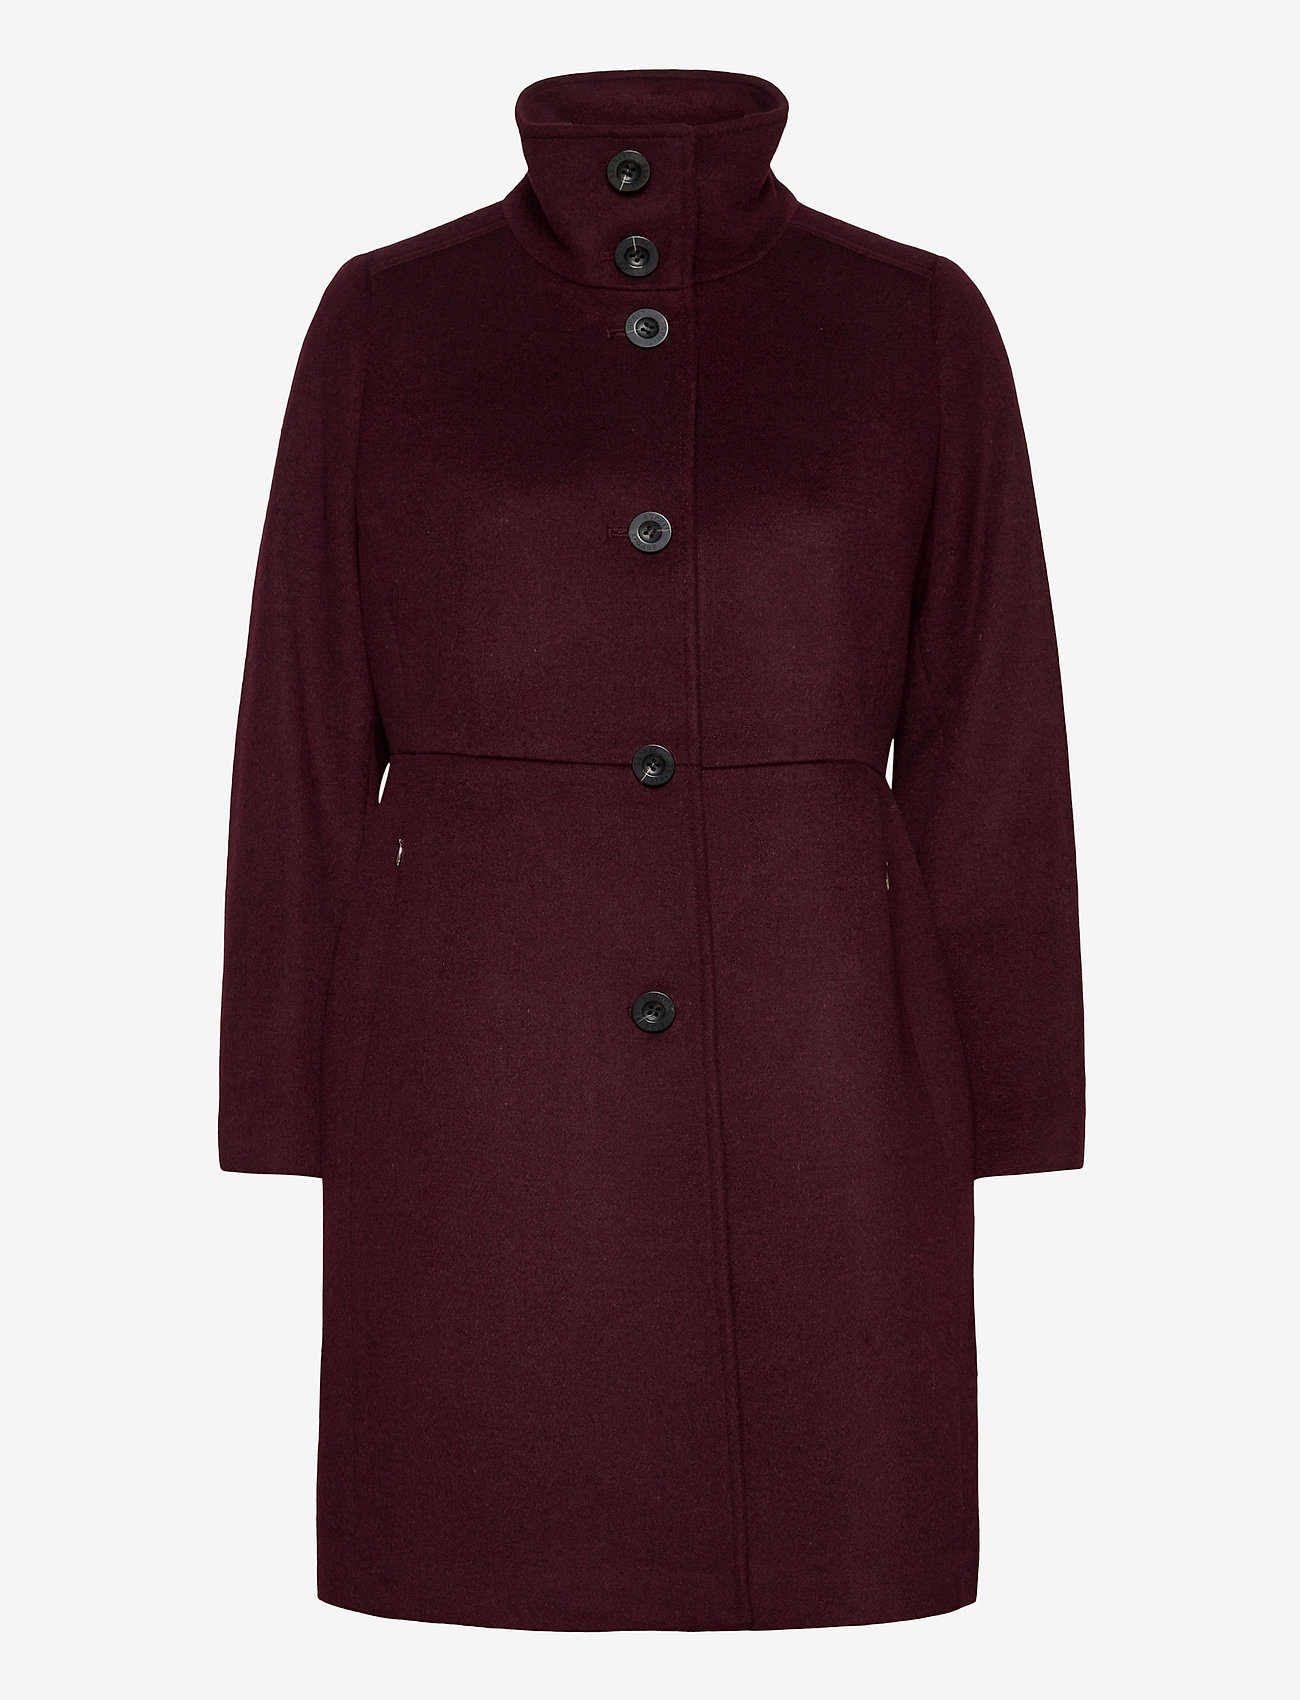 Esprit Collection - Coats woven - manteaux en laine - bordeaux red - 1